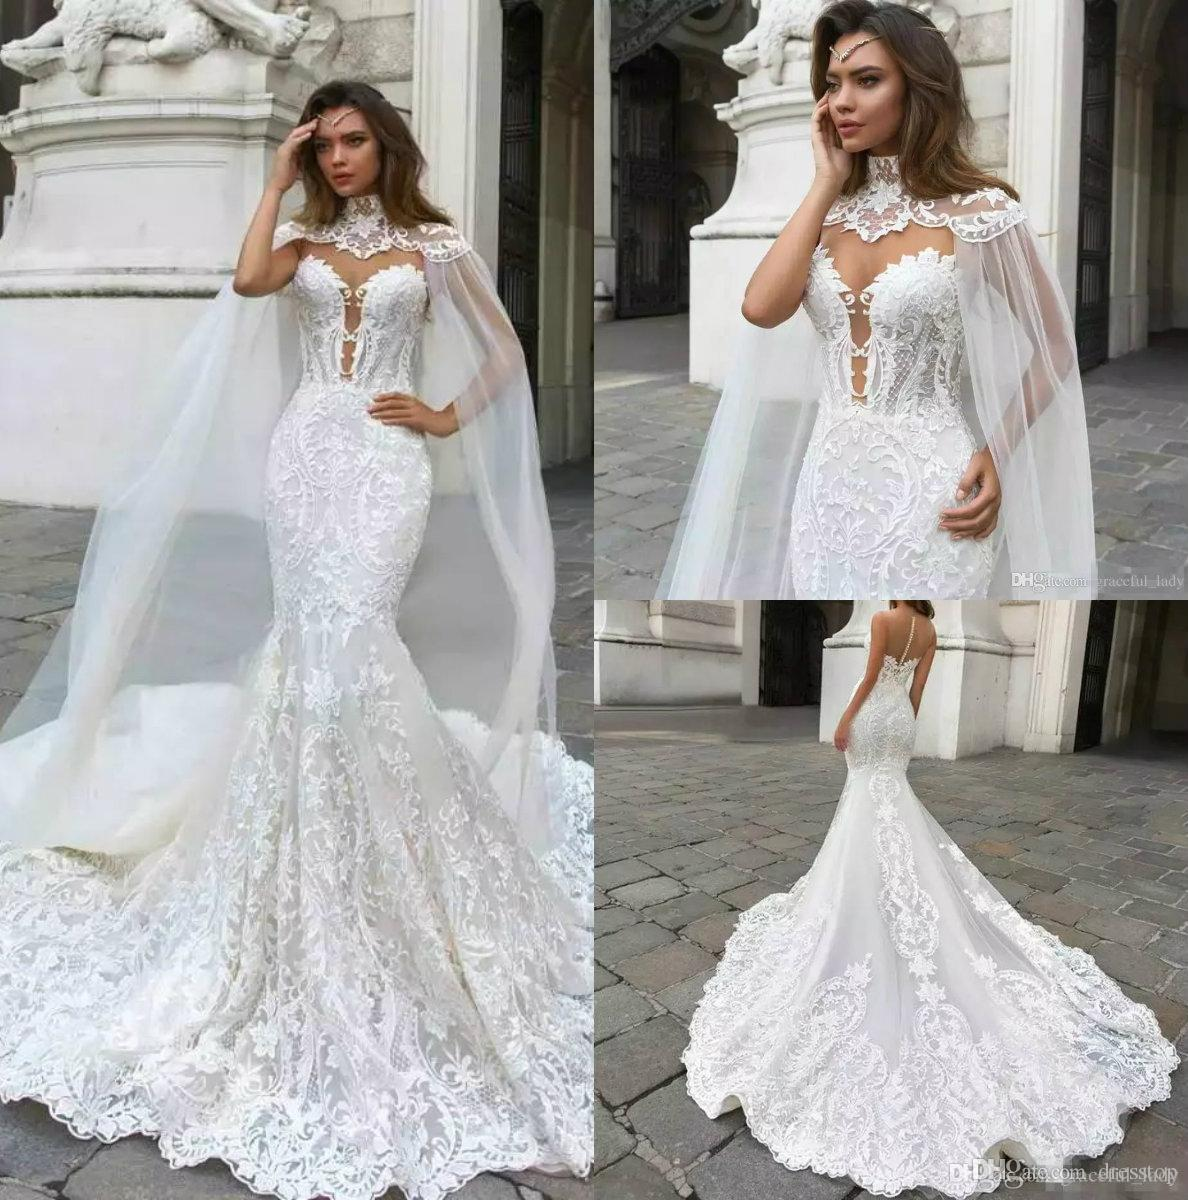 bc4889735e3 2018 Beach Mermaid Wedding Dresses Sheer Neck Lace Bridal Gowns With Cape  Vestido De Novia Boho Plus Size Wedding Dress Formal Dress Kate Middleton  Wedding ...